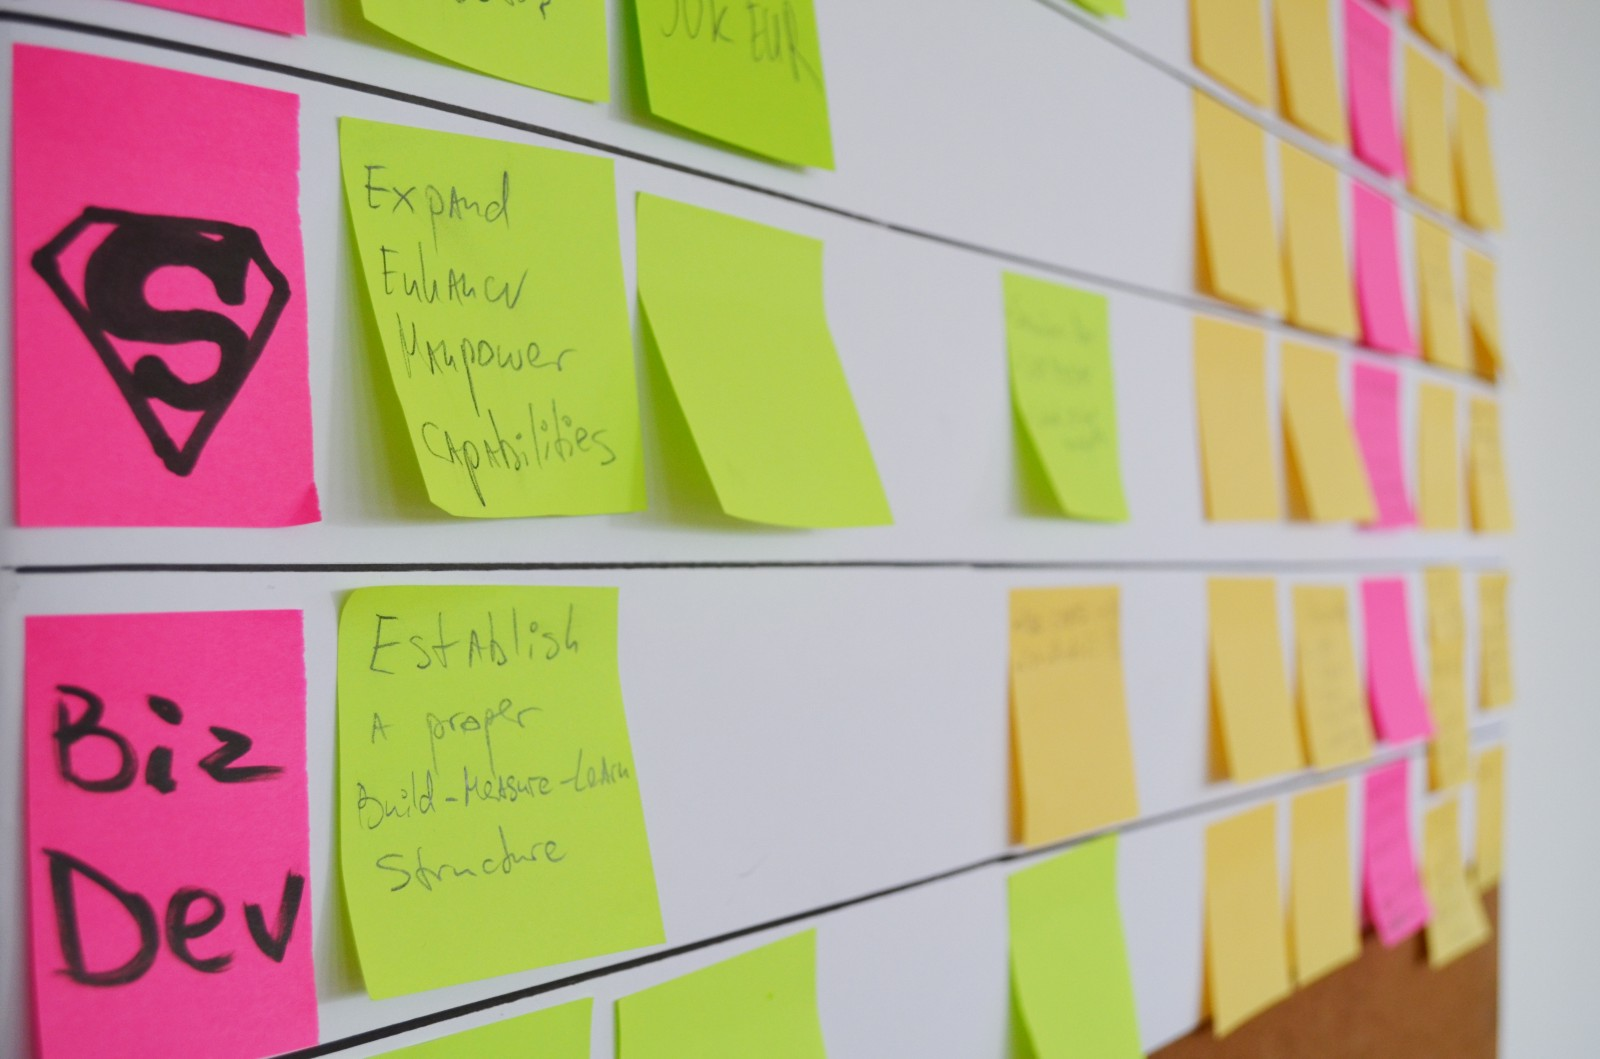 Planning board with sticky notes